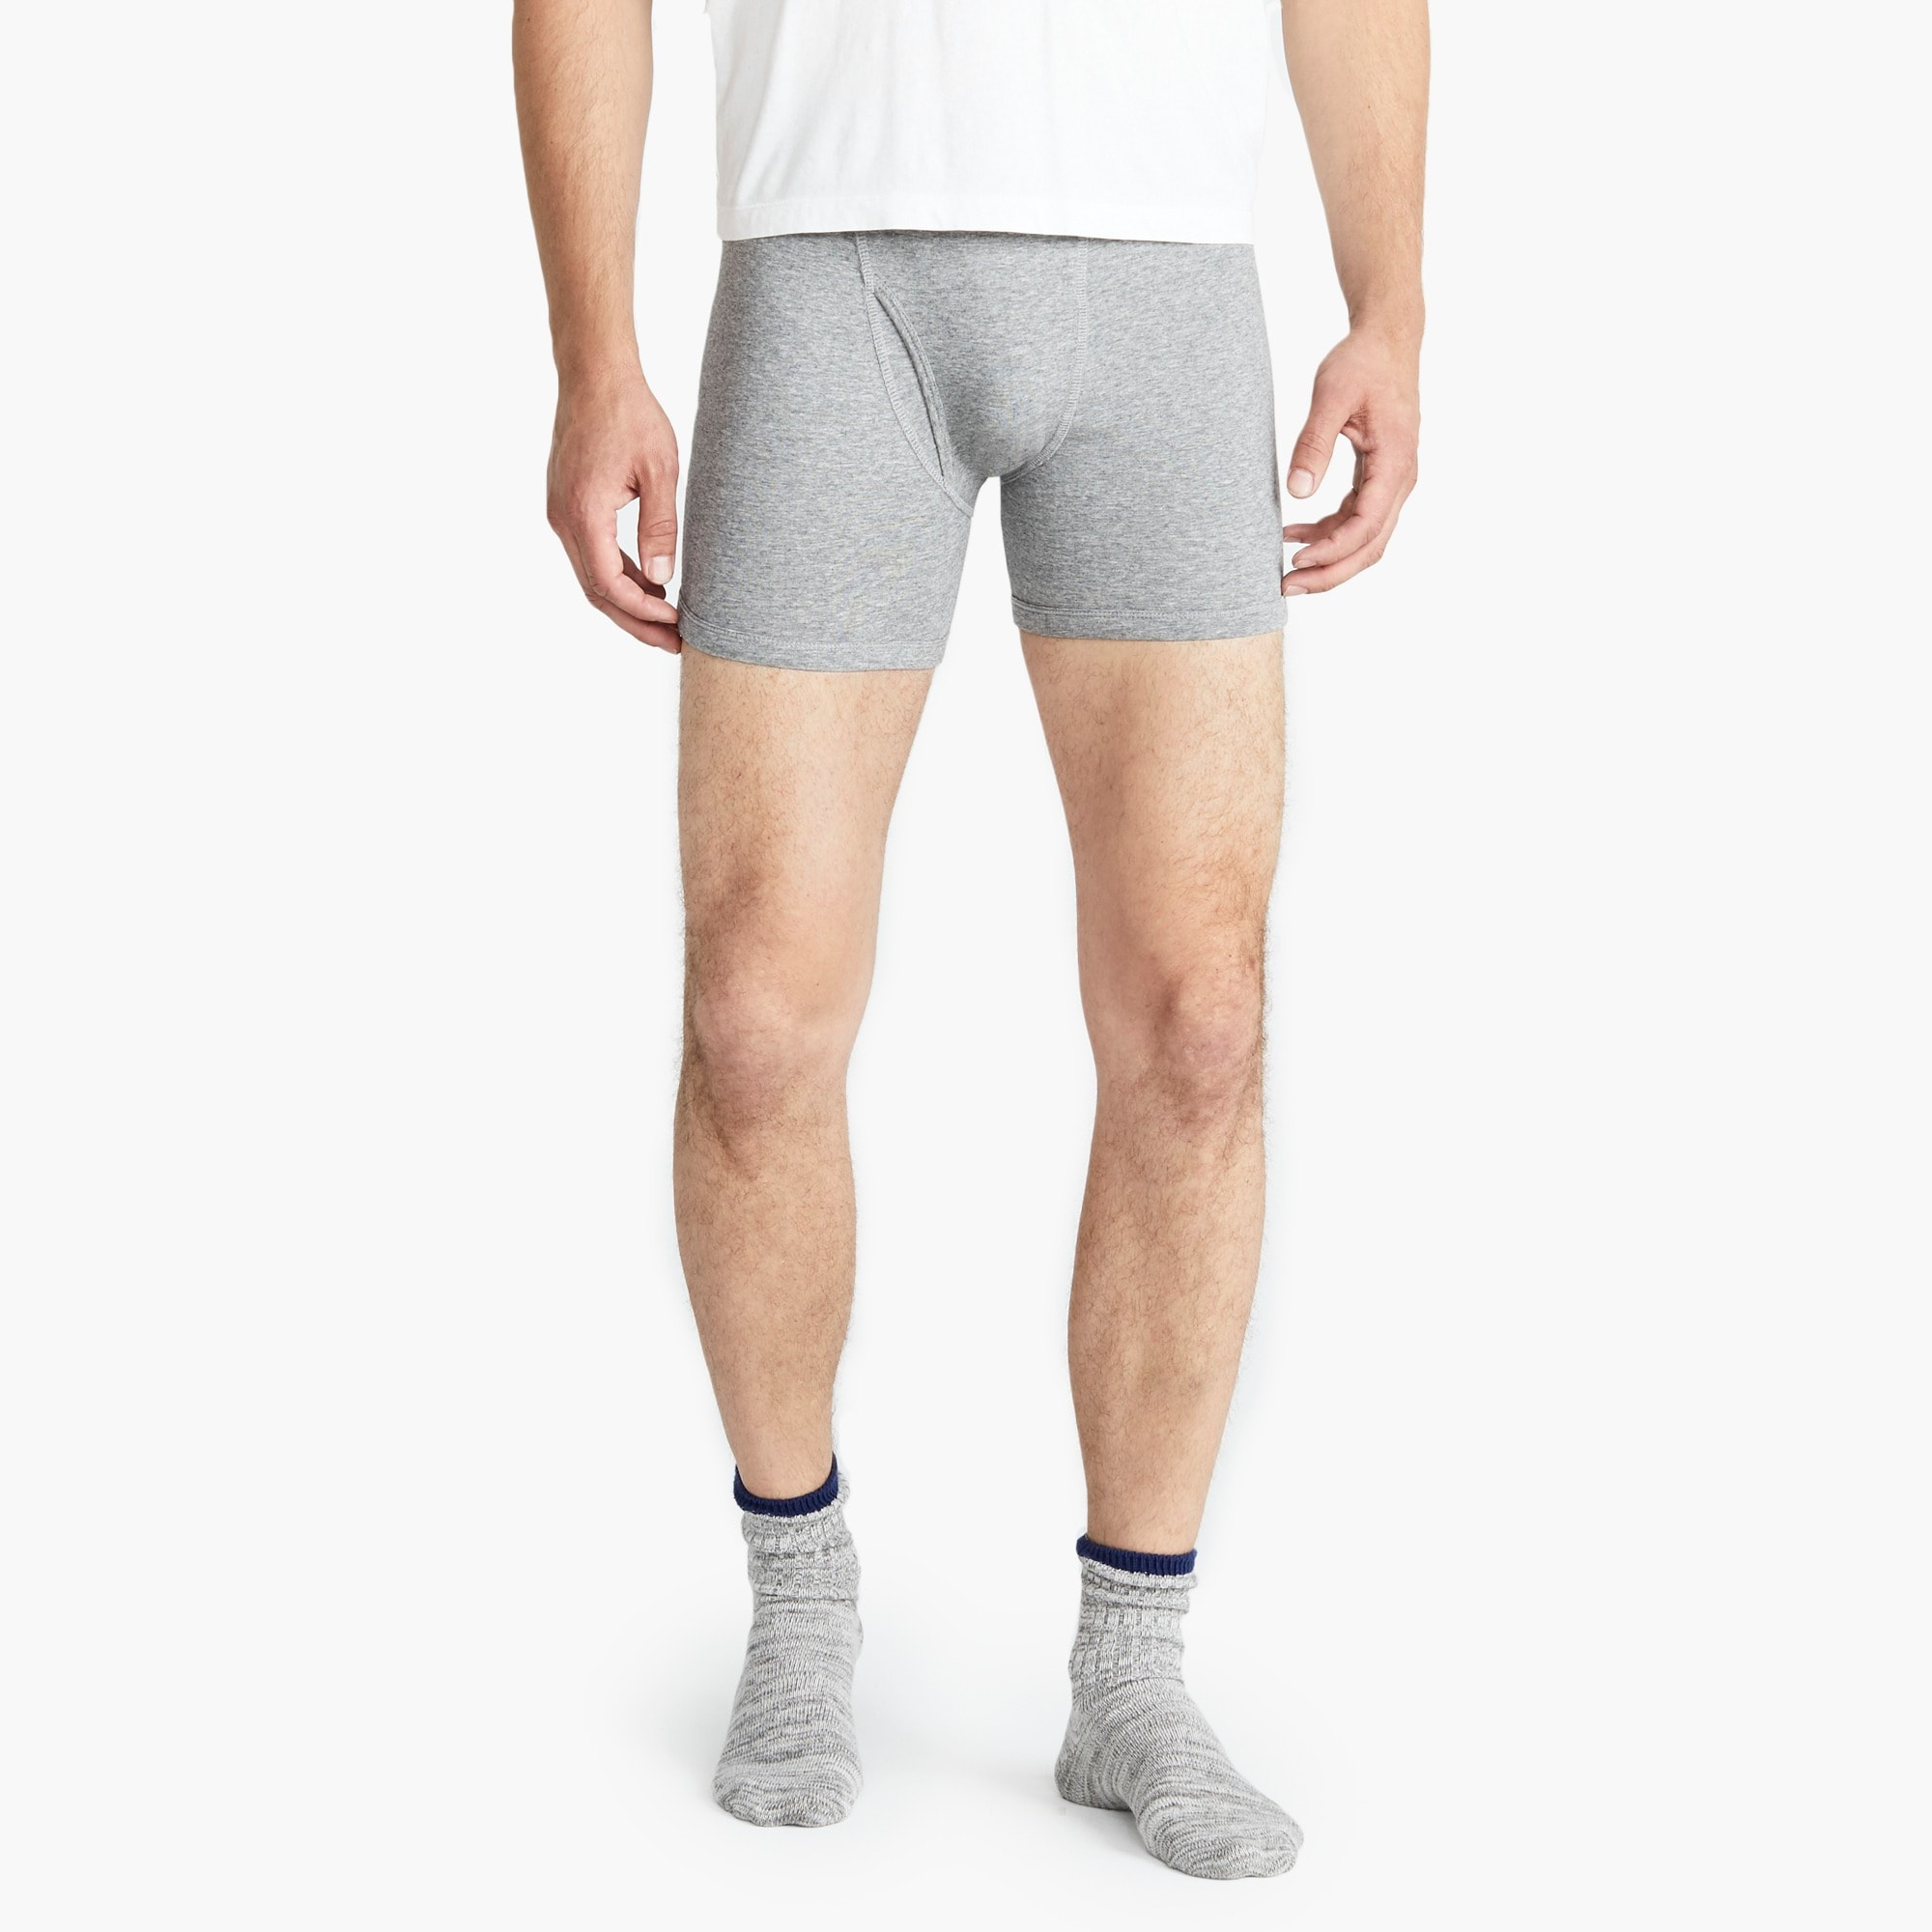 mens Stretch grey boxer briefs